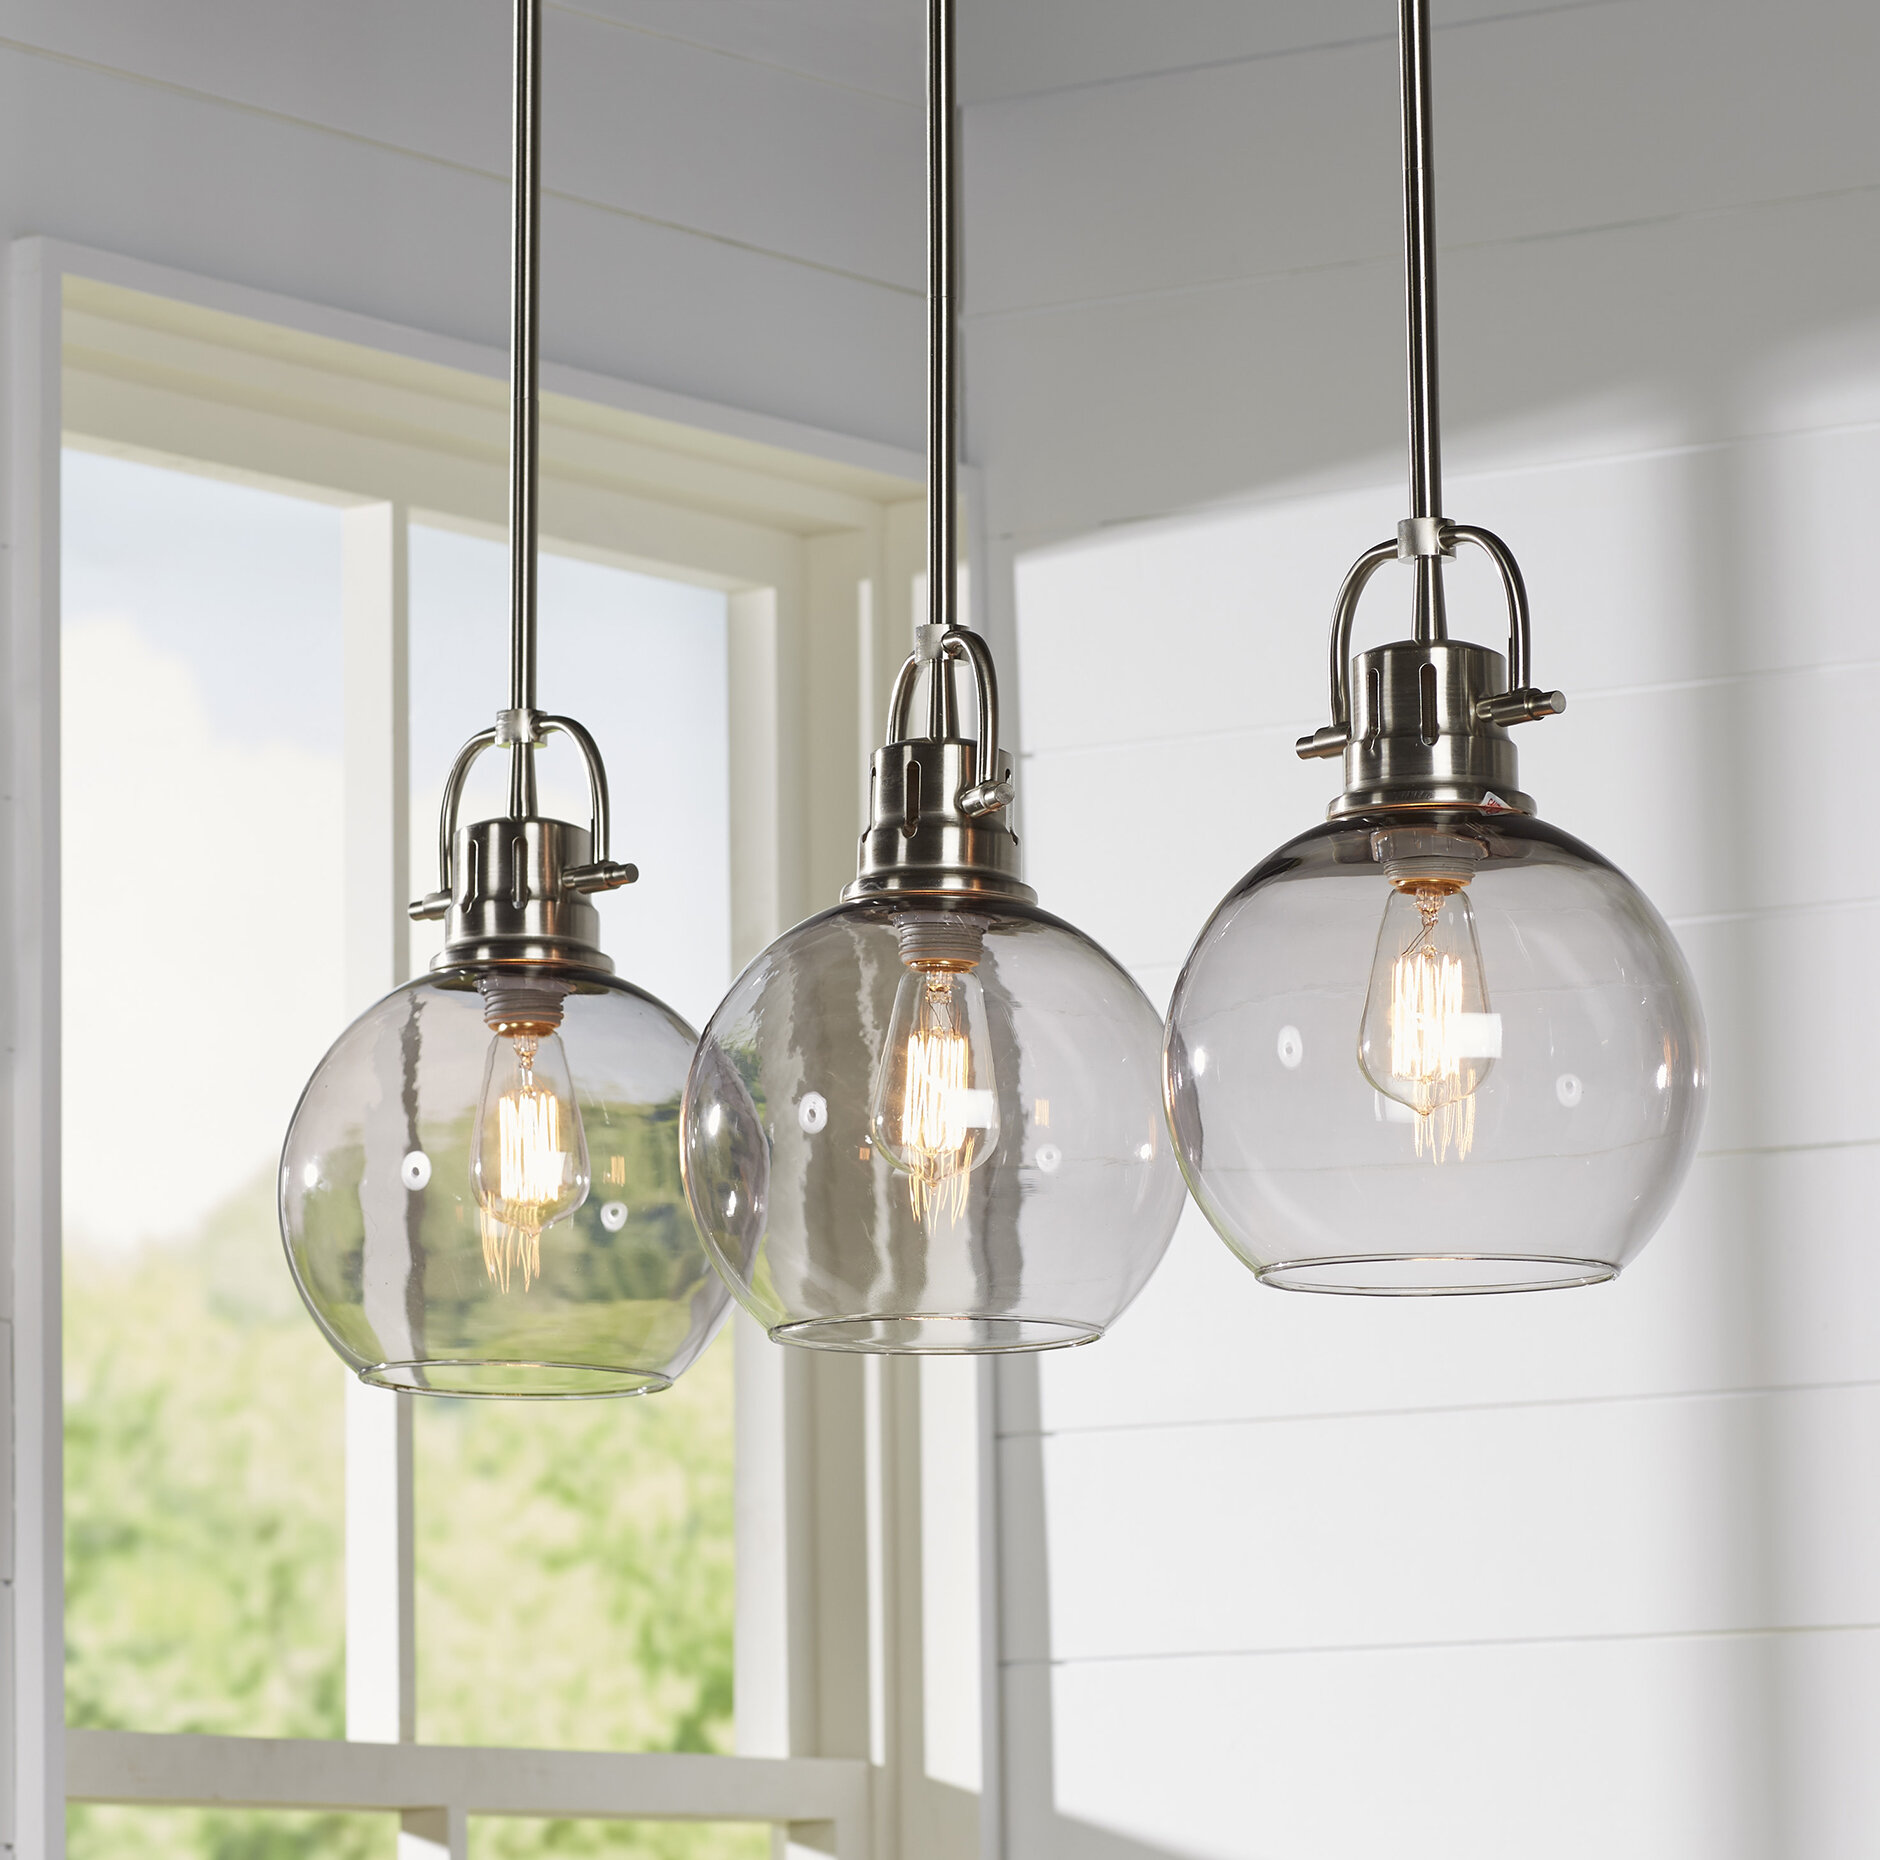 pendant light com my favorite kitchen kristywicks lights